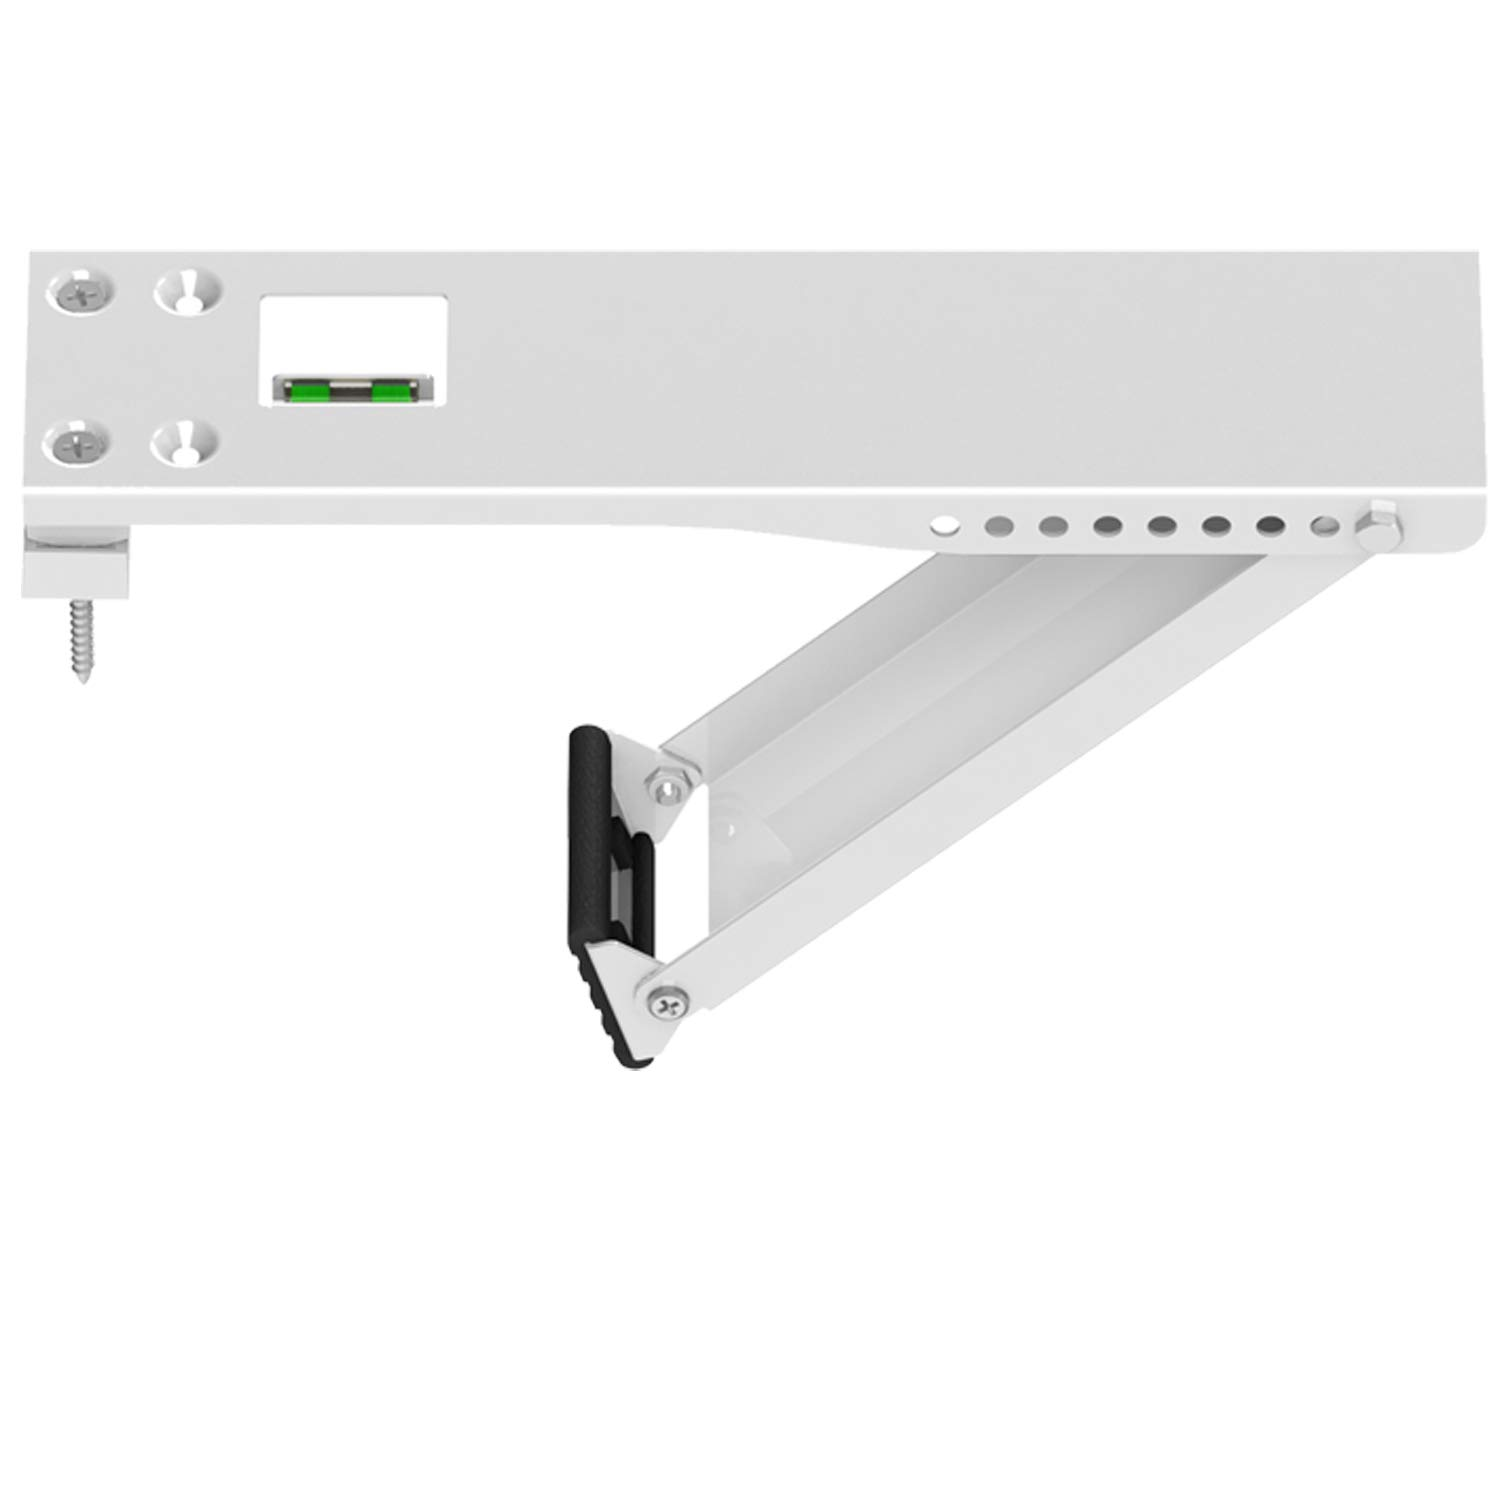 Jeacent Universal AC Window Air Conditioner Support Bracket Light Duty, Up to 85 lbs Jeacent Innovations PC01A-1